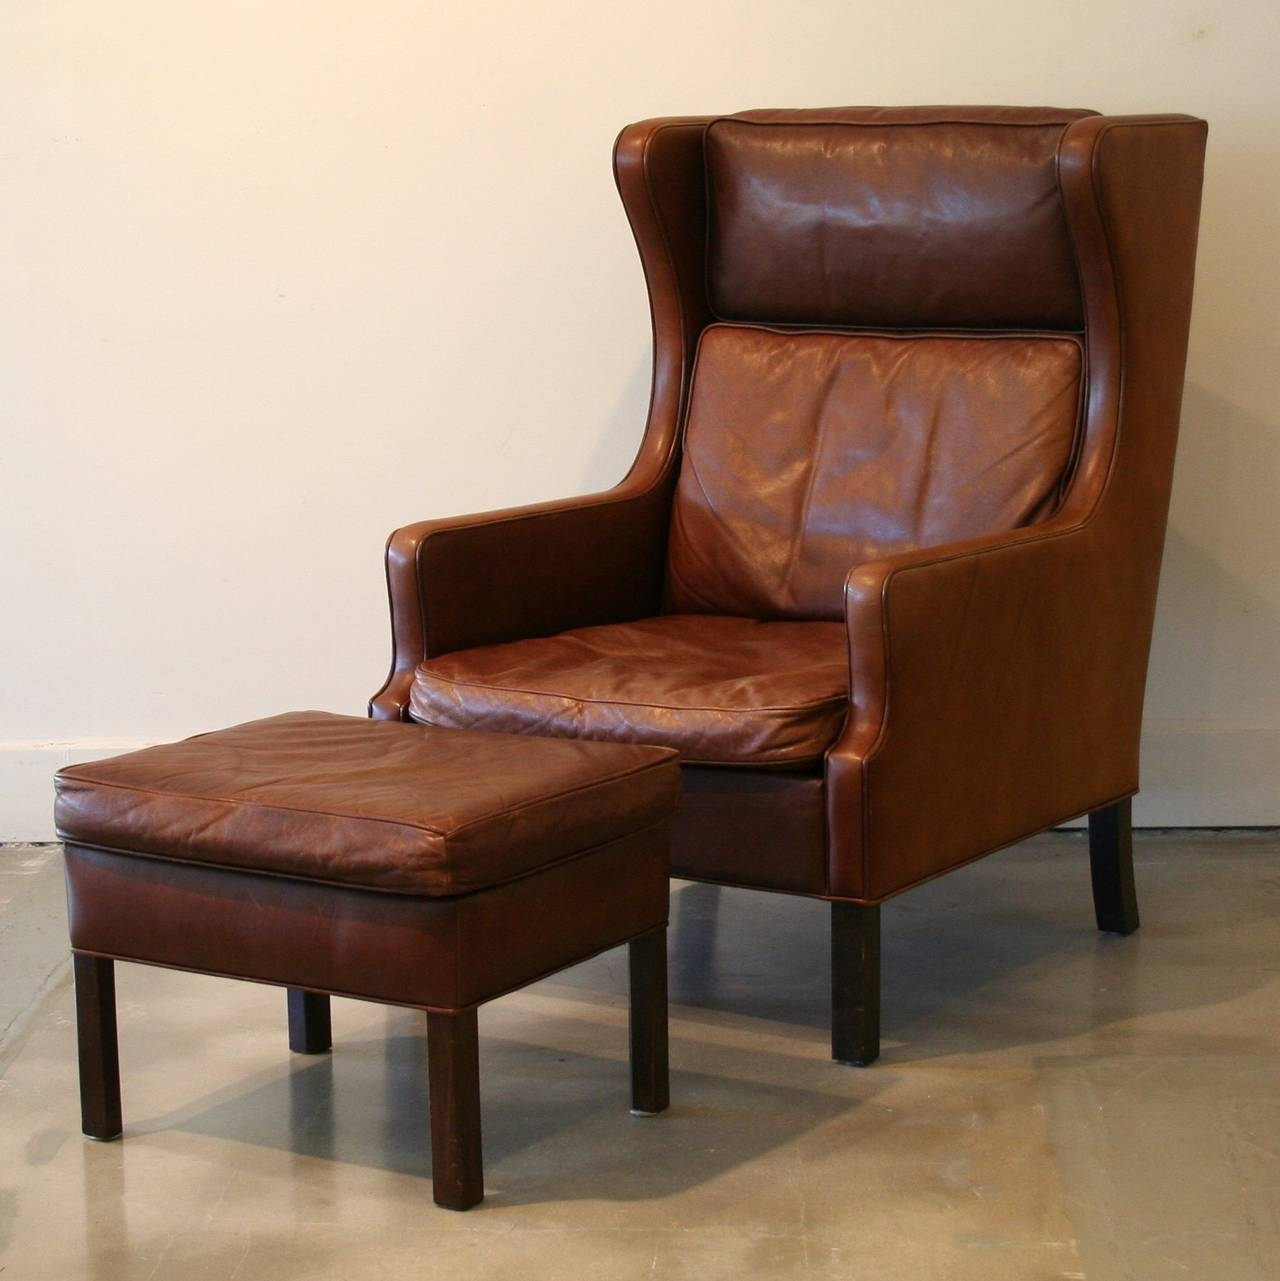 30 Ideas of Vintage Leather Armchairs